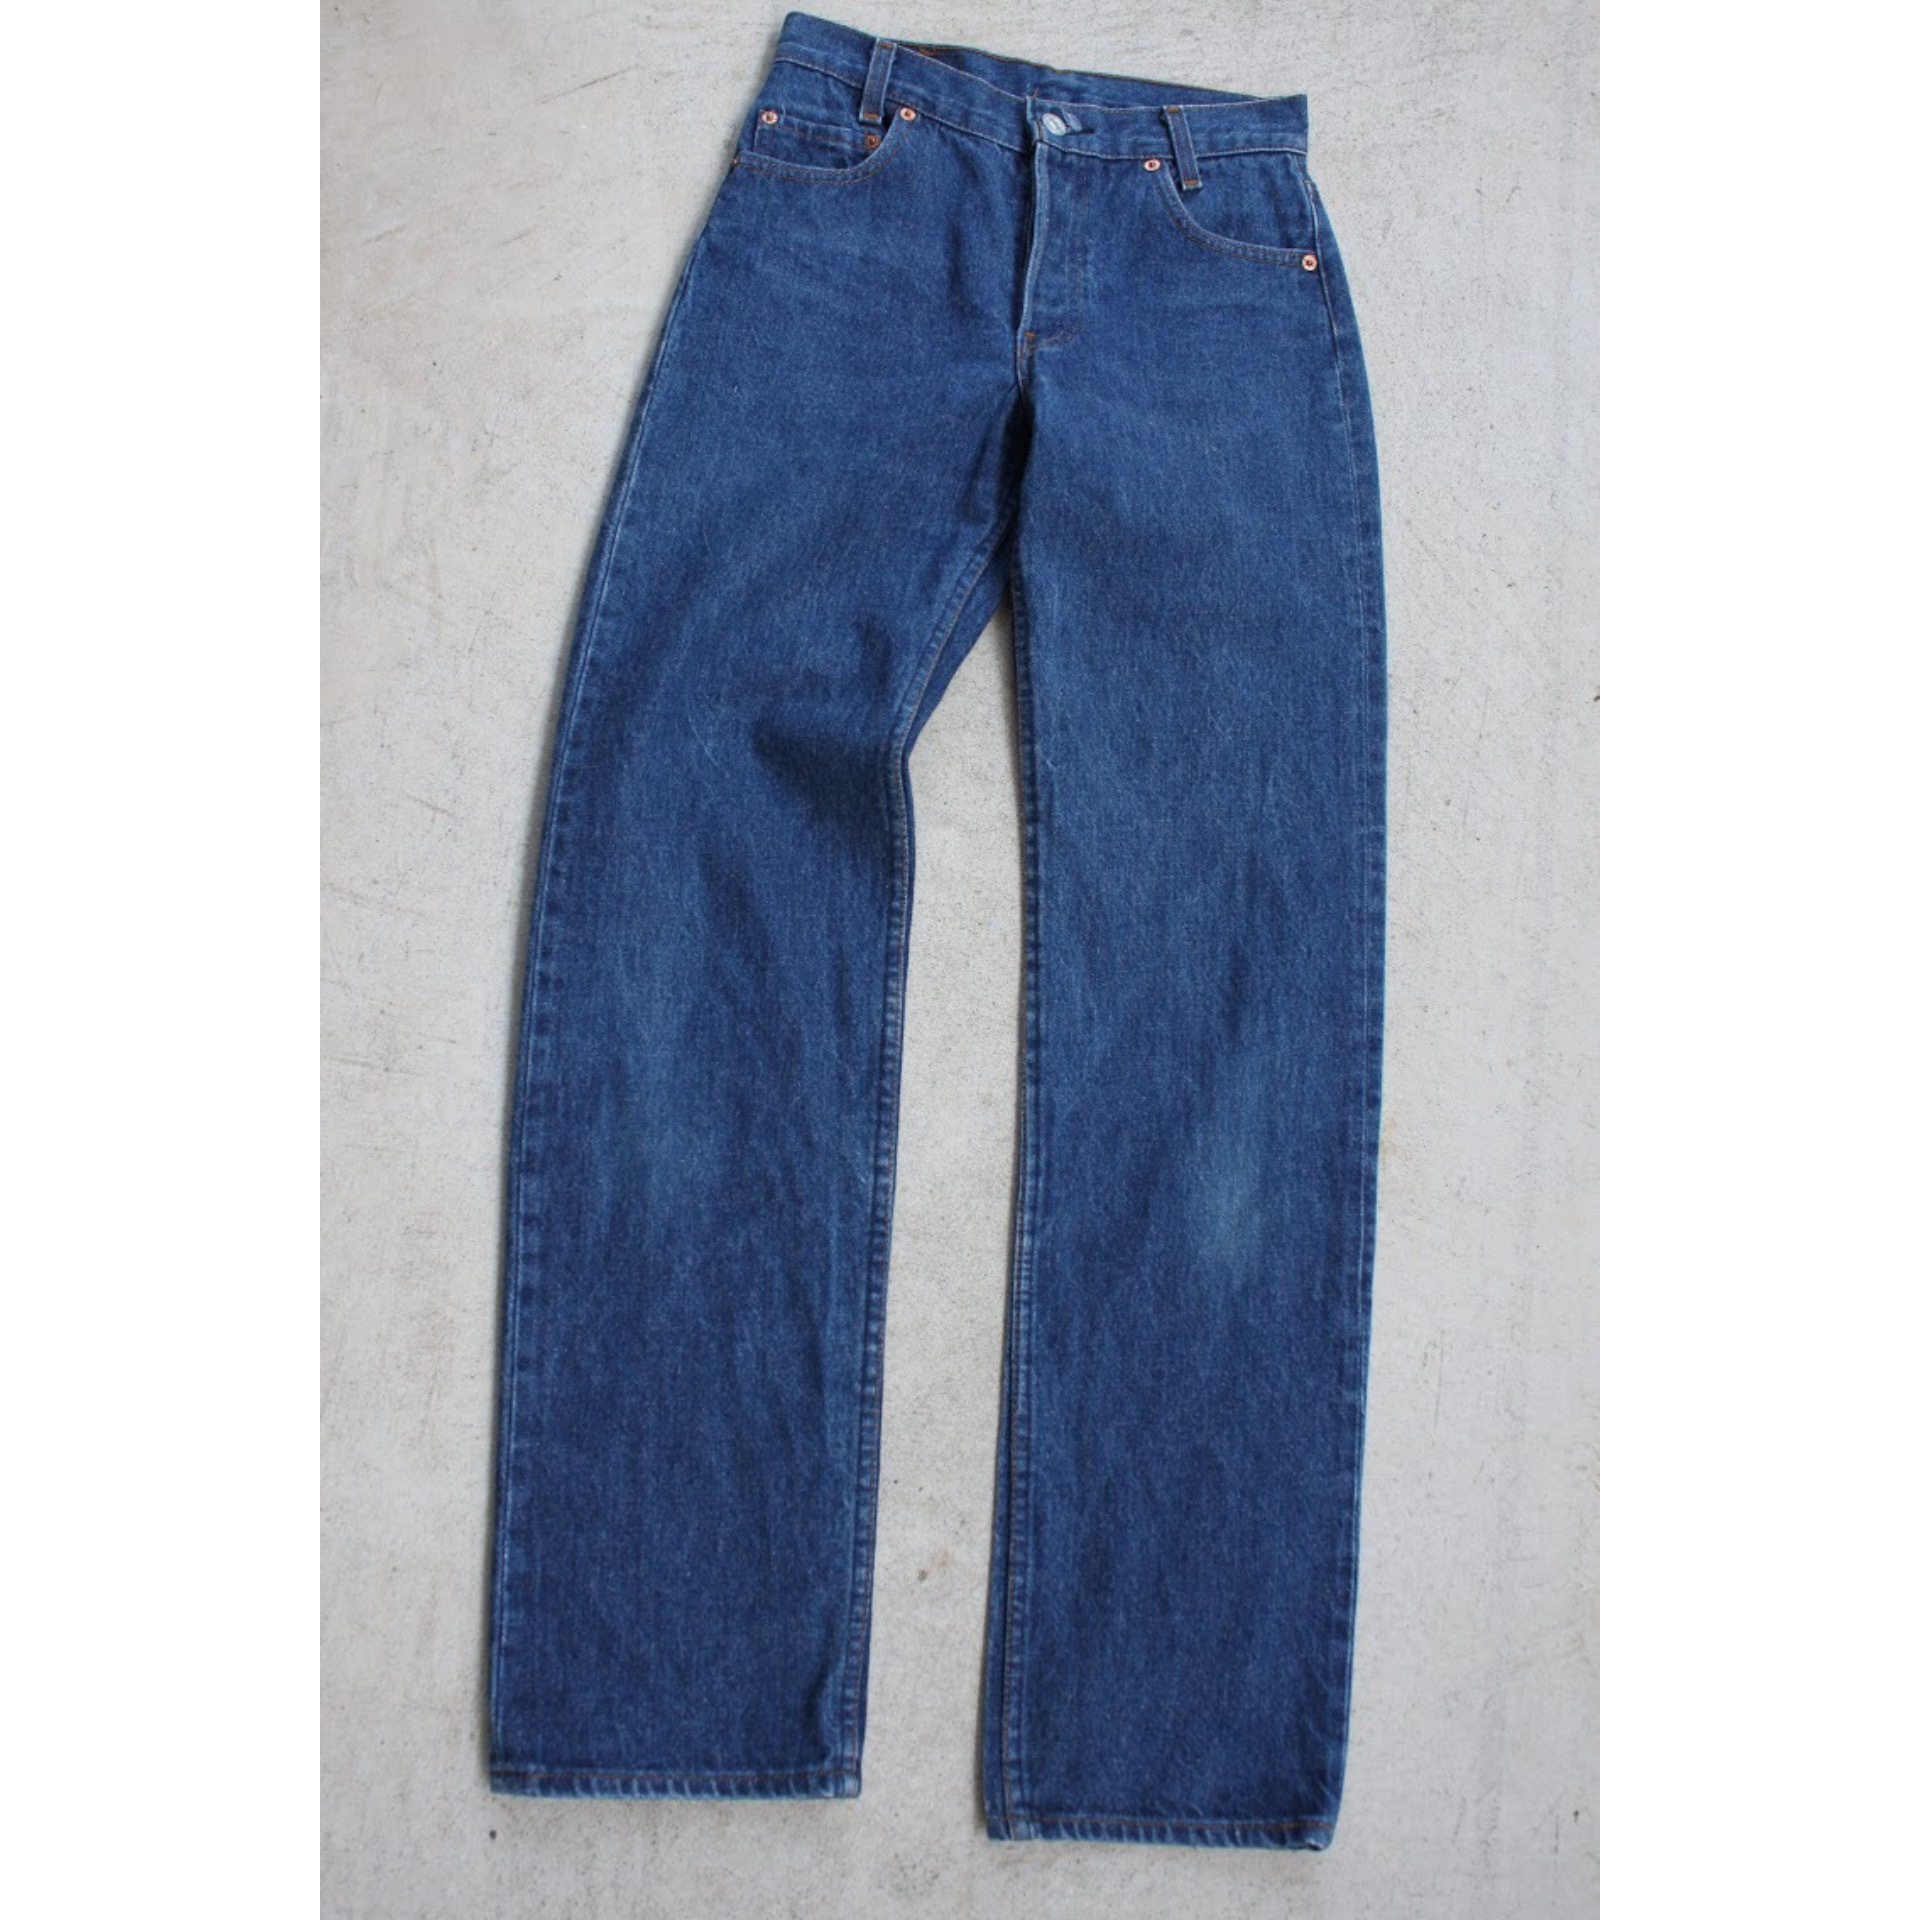 Vintage Levis 701 denim pants